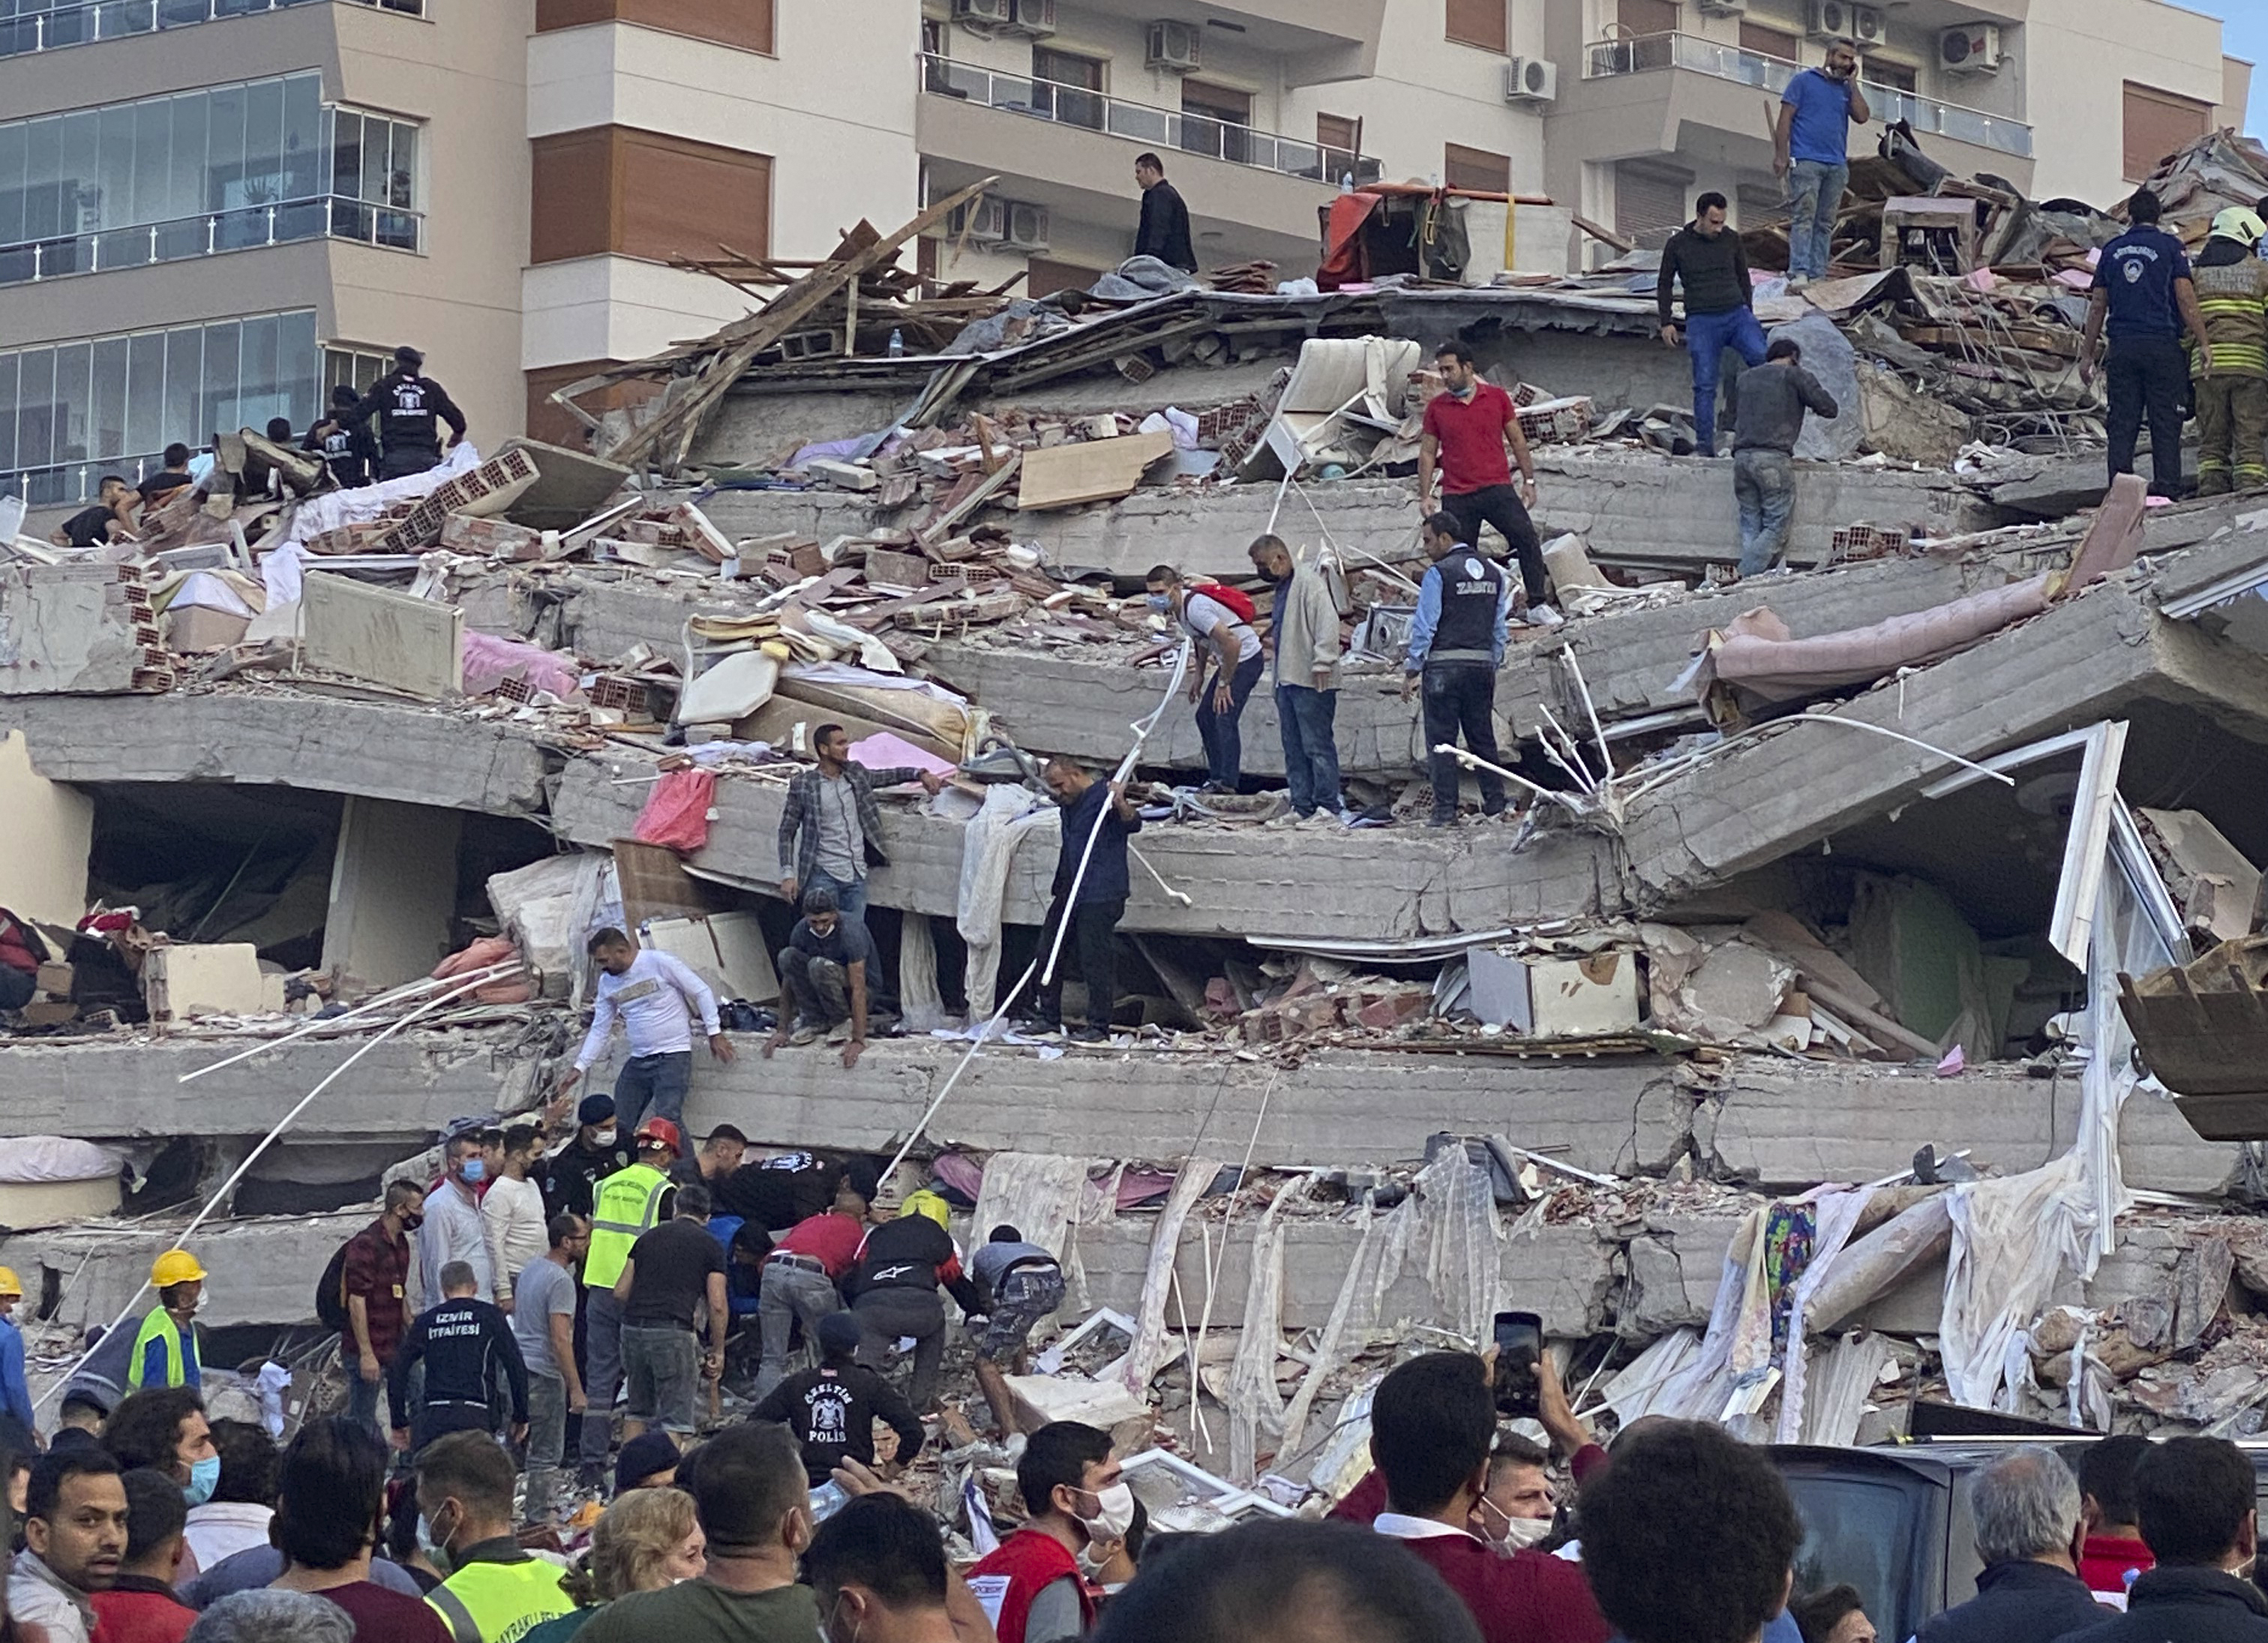 Rescue workers and others try to save people trapped in the debris of a collapsed building, in Izmir, Turkey after a deadly earthquake Friday in the Aegean Sea rocked western Turkey and the Greek island of Samos. It was also felt in Athens and in Bulgaria.